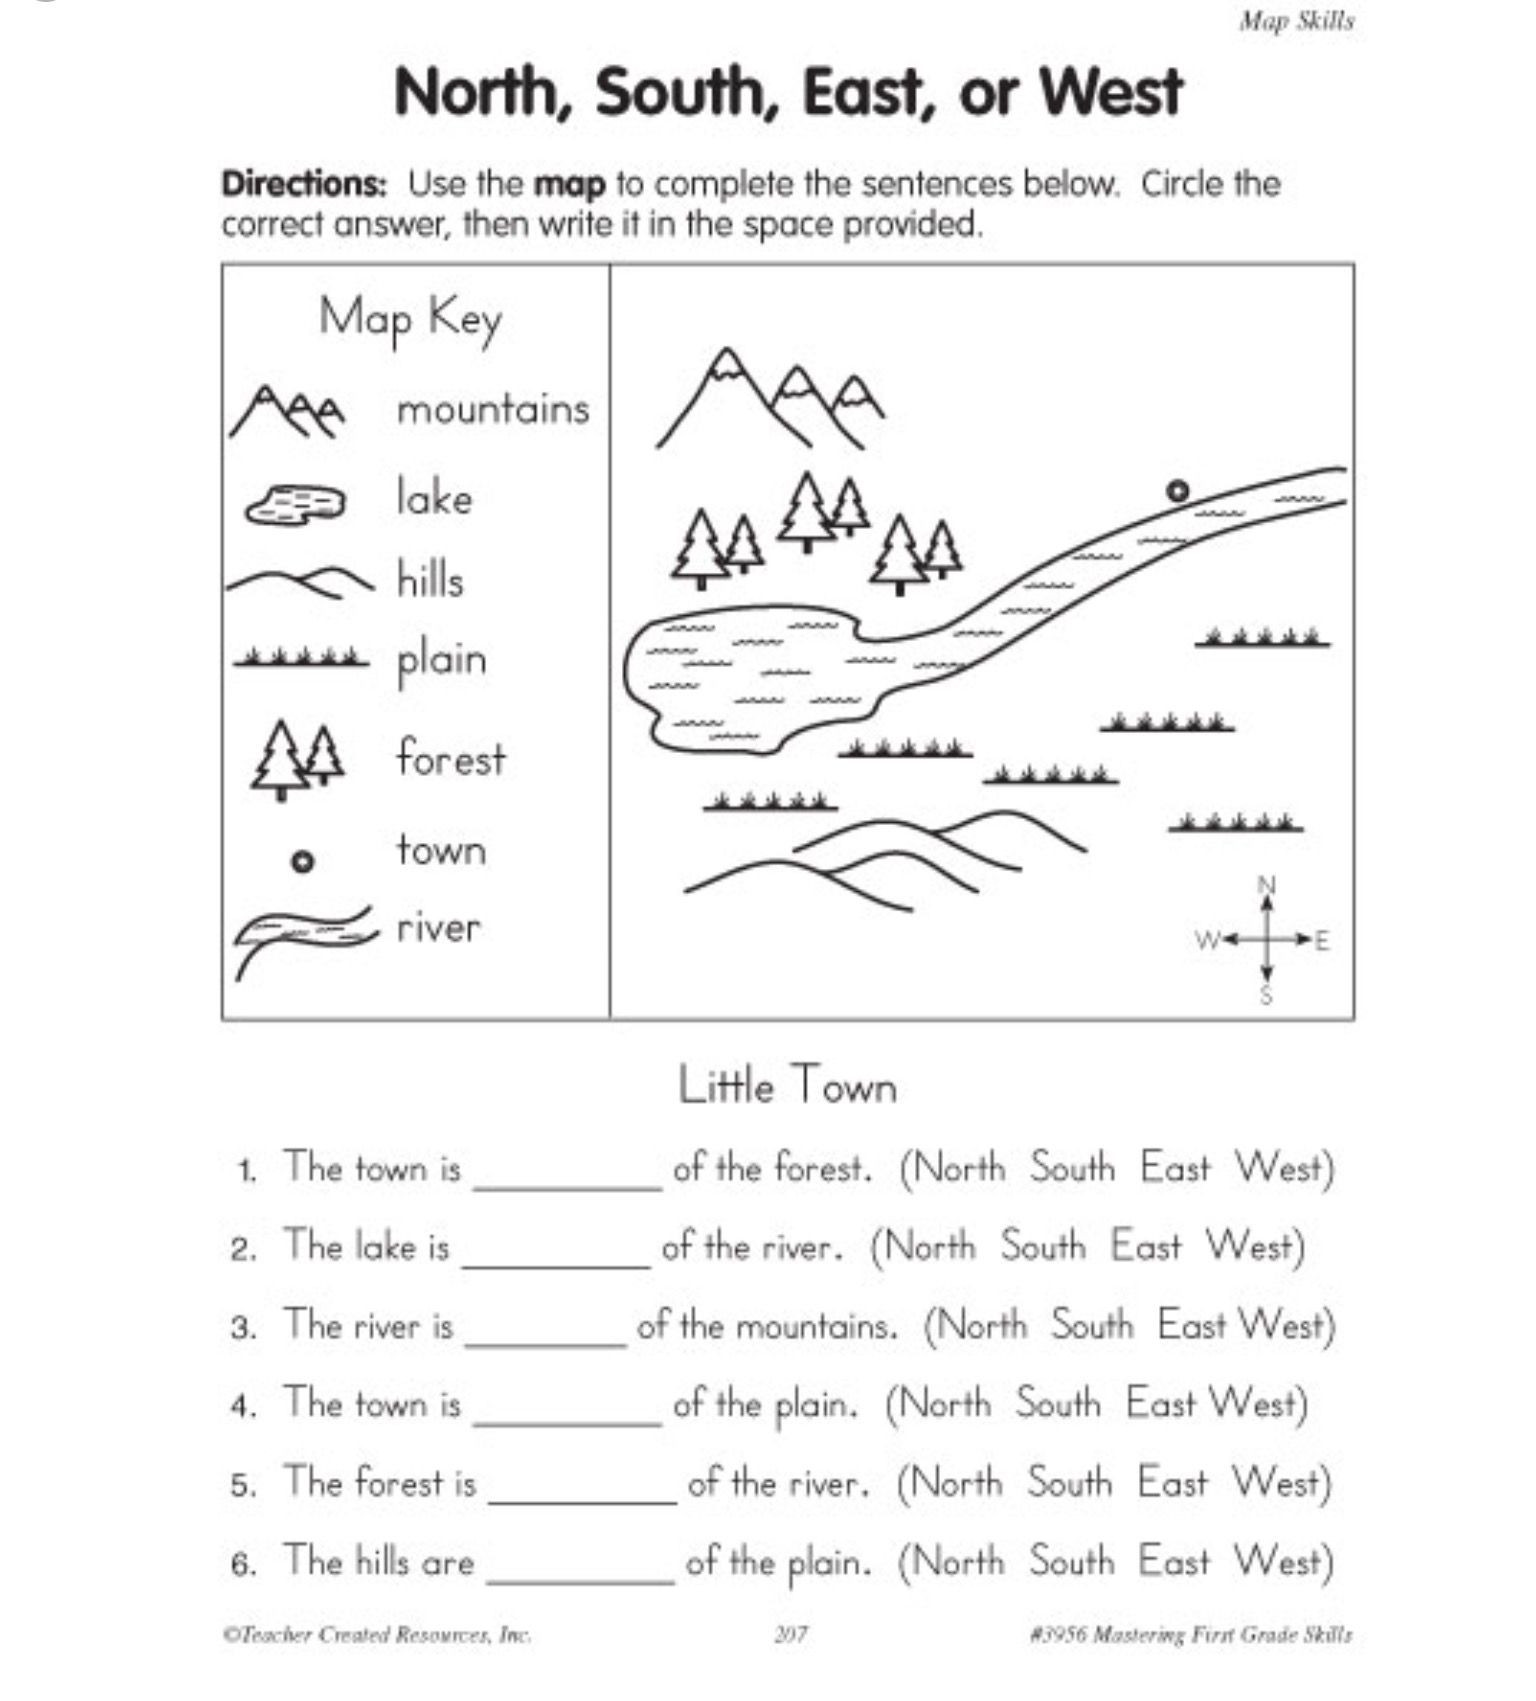 6th Grade History Worksheets Hiddenfashionhistory Non Verbal Munication Worksheets 4